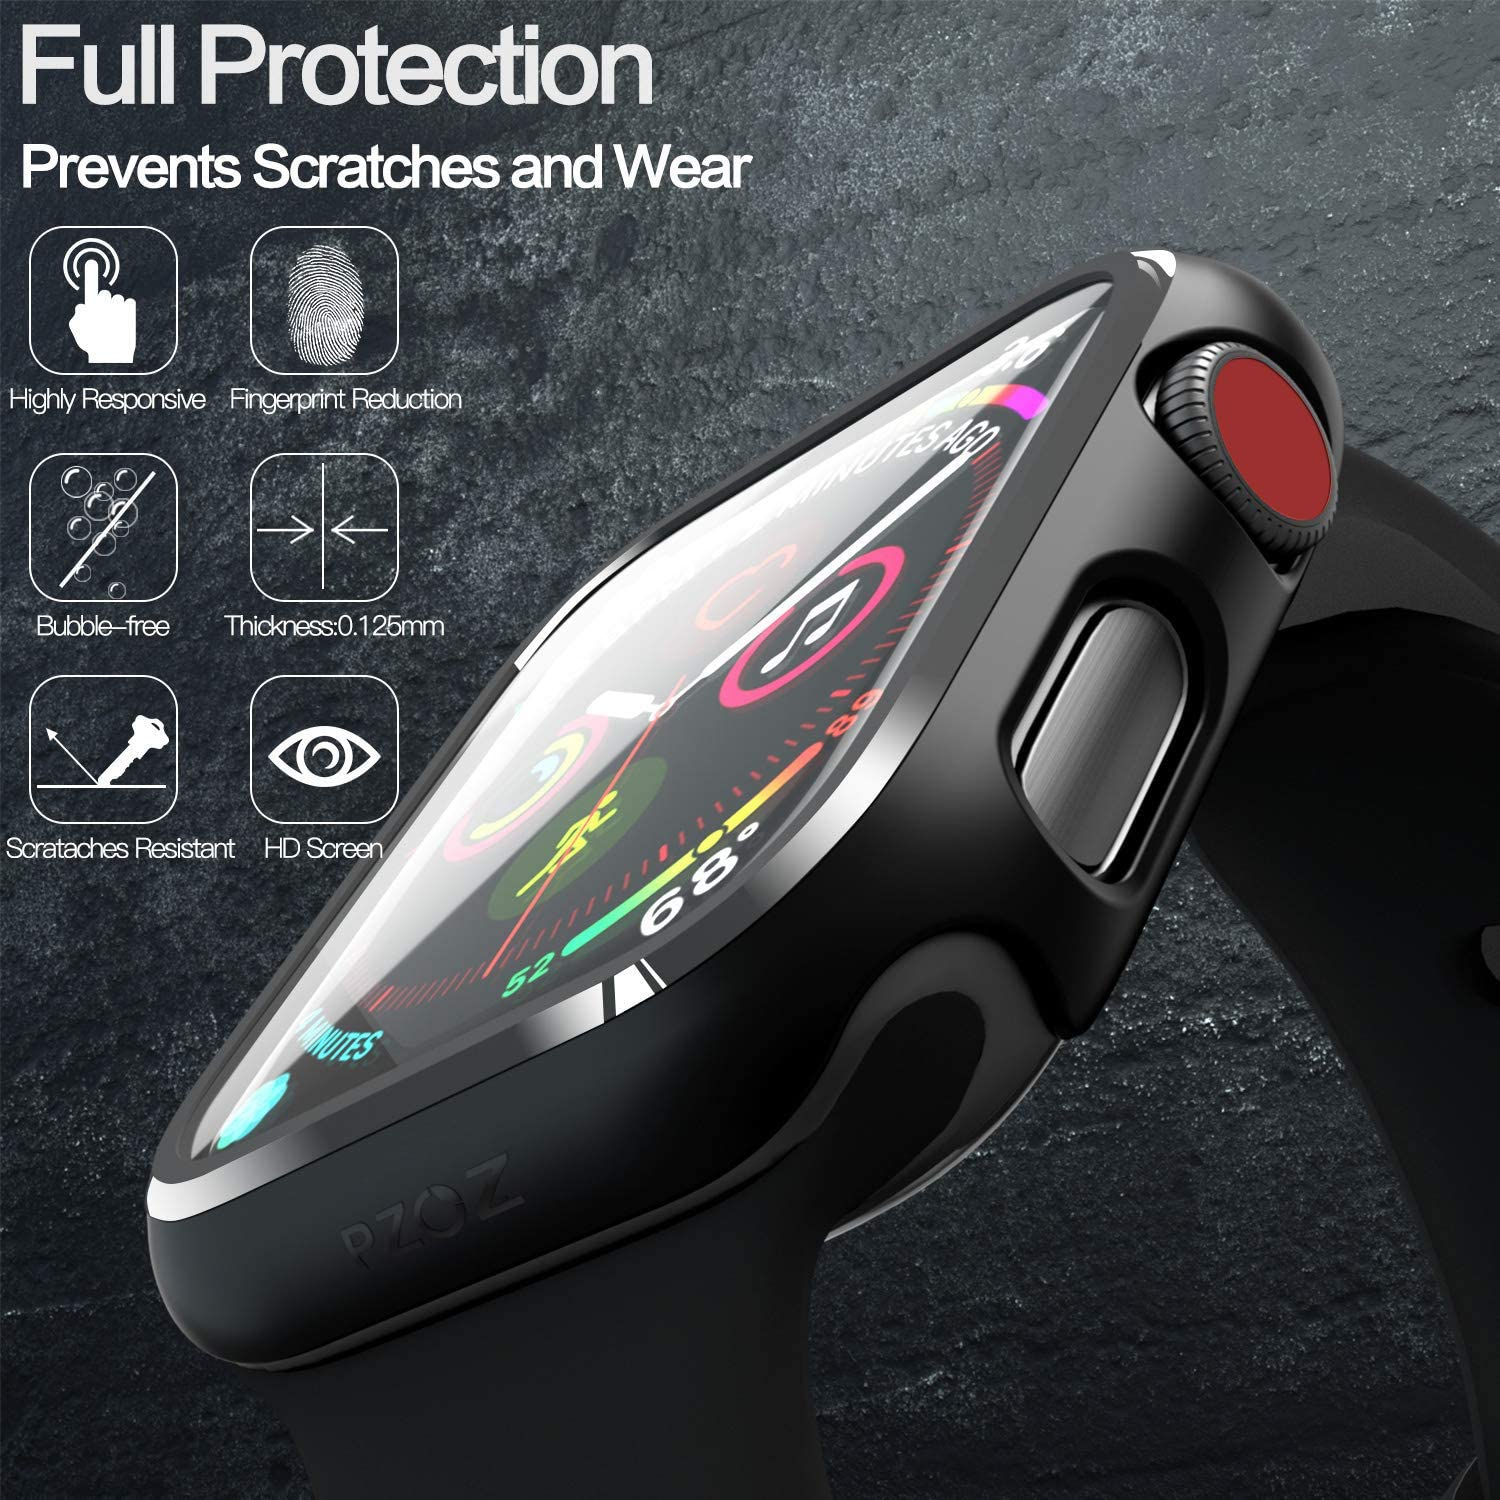 Compatible Apple Watch Series 6 SE Case 44mm 40mm Glass Film With Screen Protector Full Coverage For Iwatch 6 5 4 3 2 42mm 38mm 3